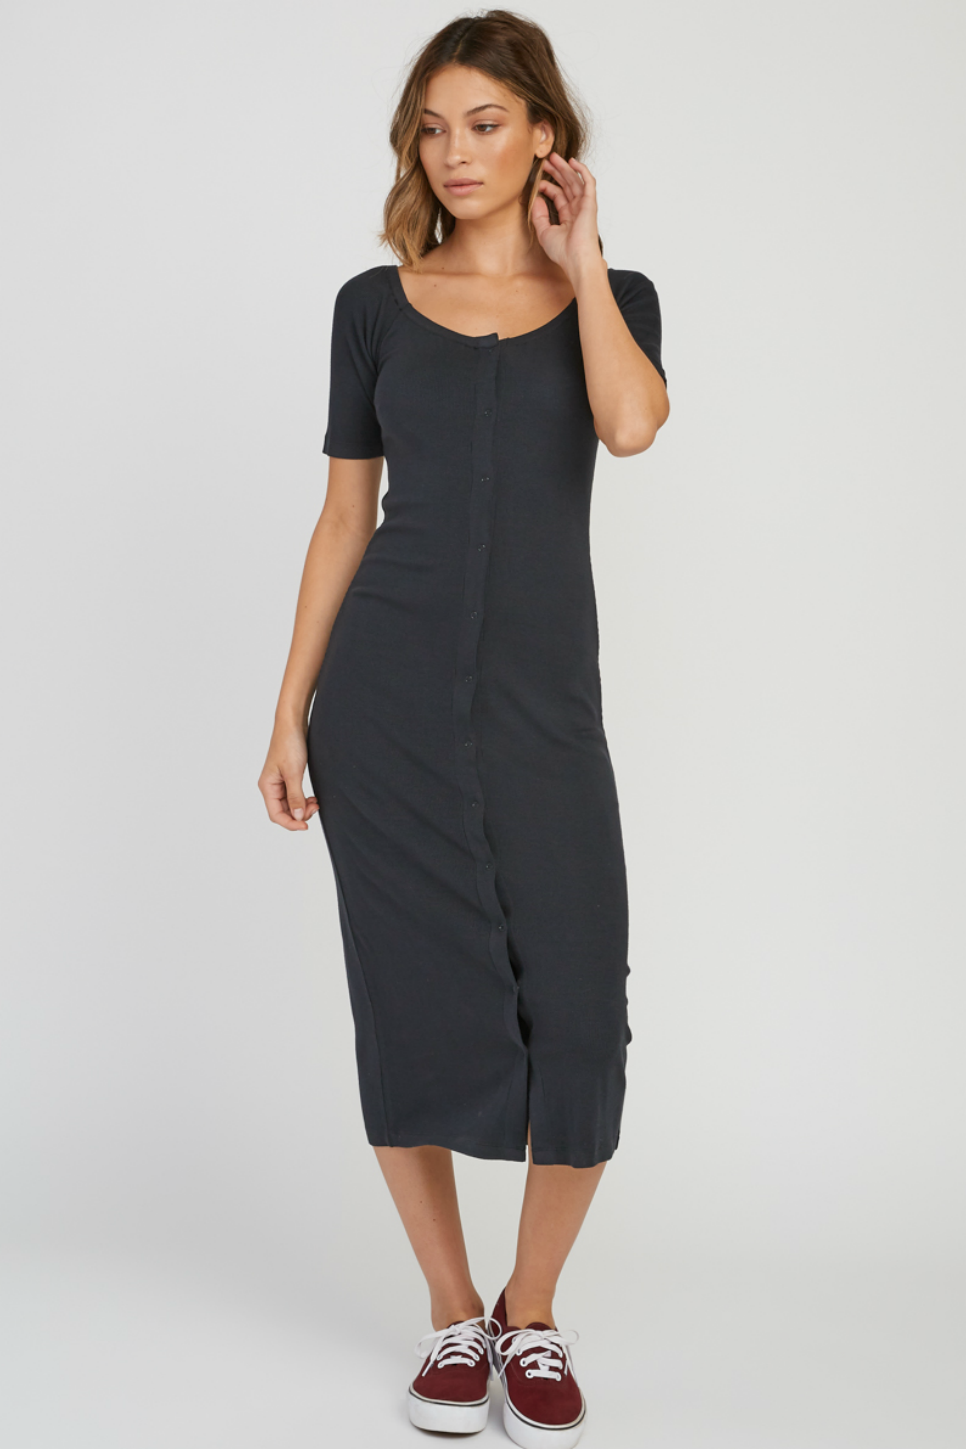 RVCA - Dia Dress - Black - Front